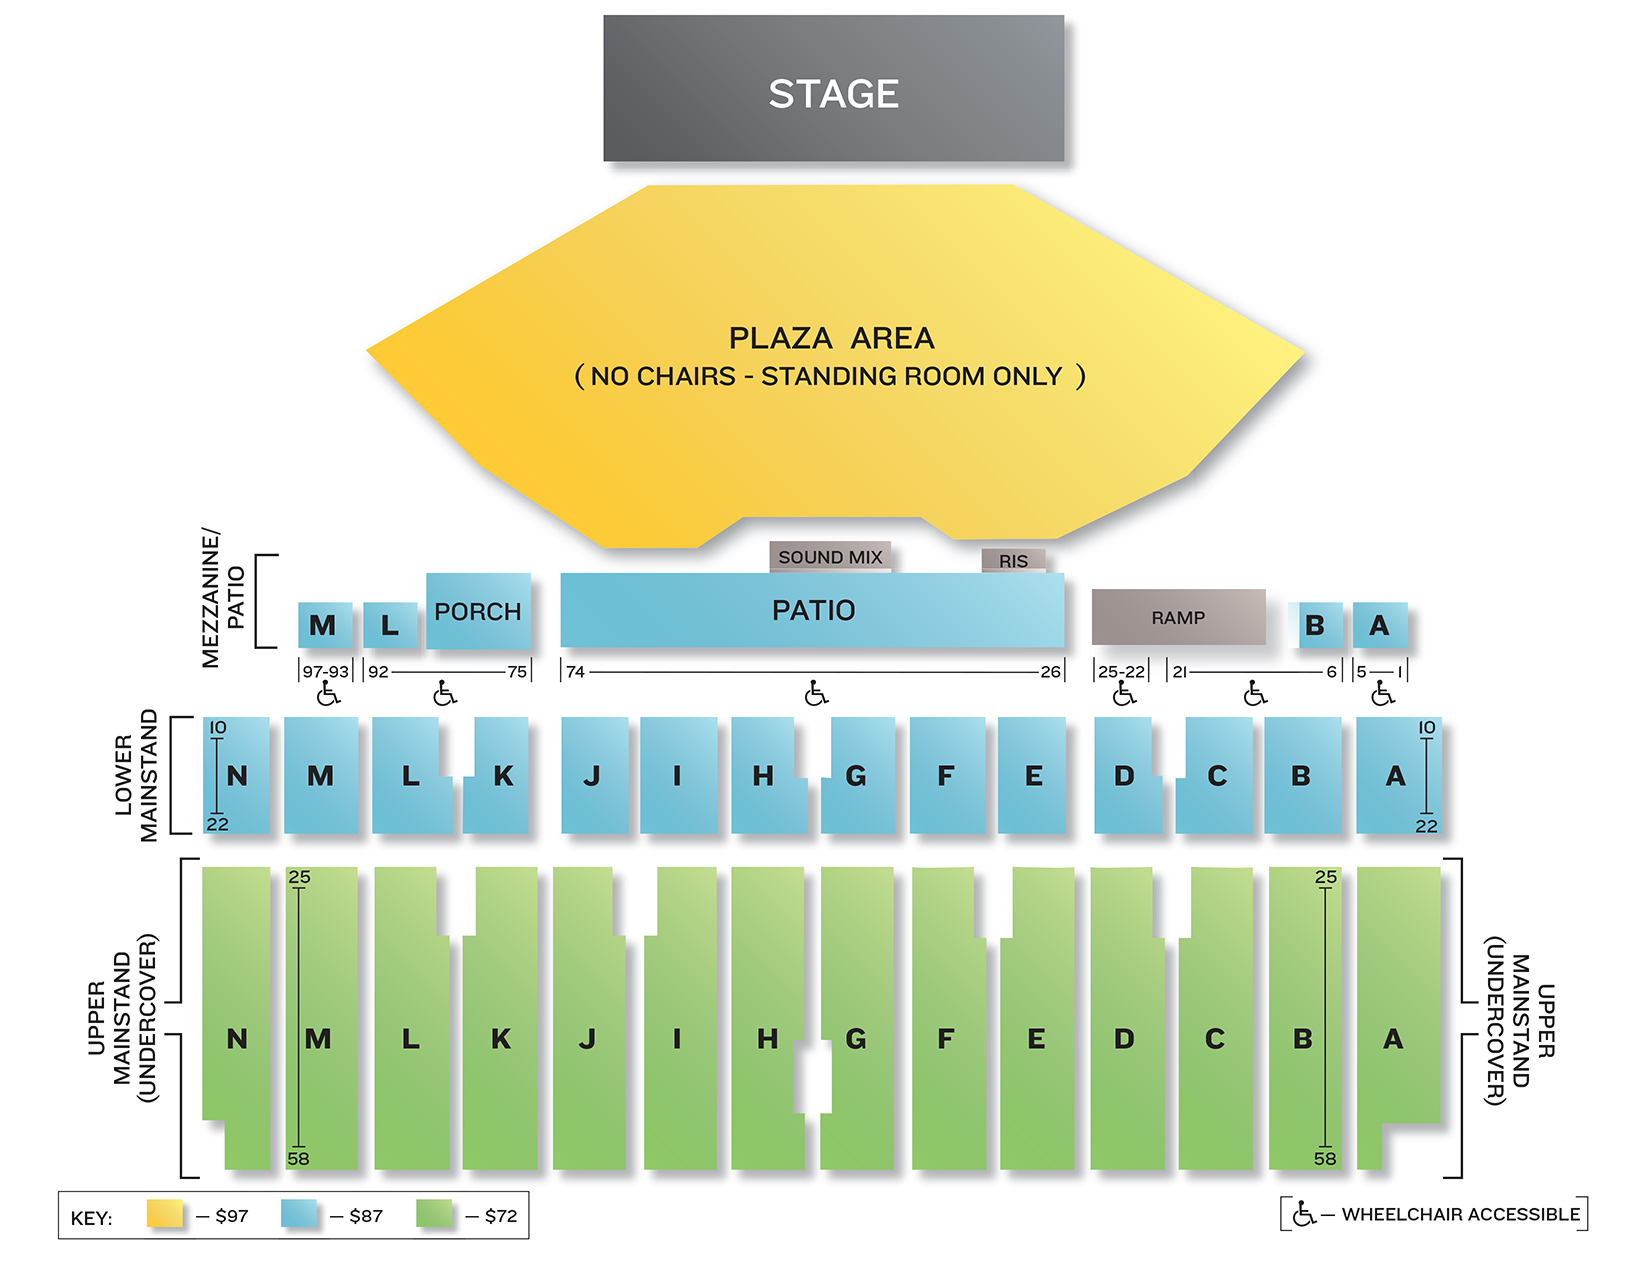 Minnesota state fair seating chart grandstand seating chart geenschuldenfo Image collections